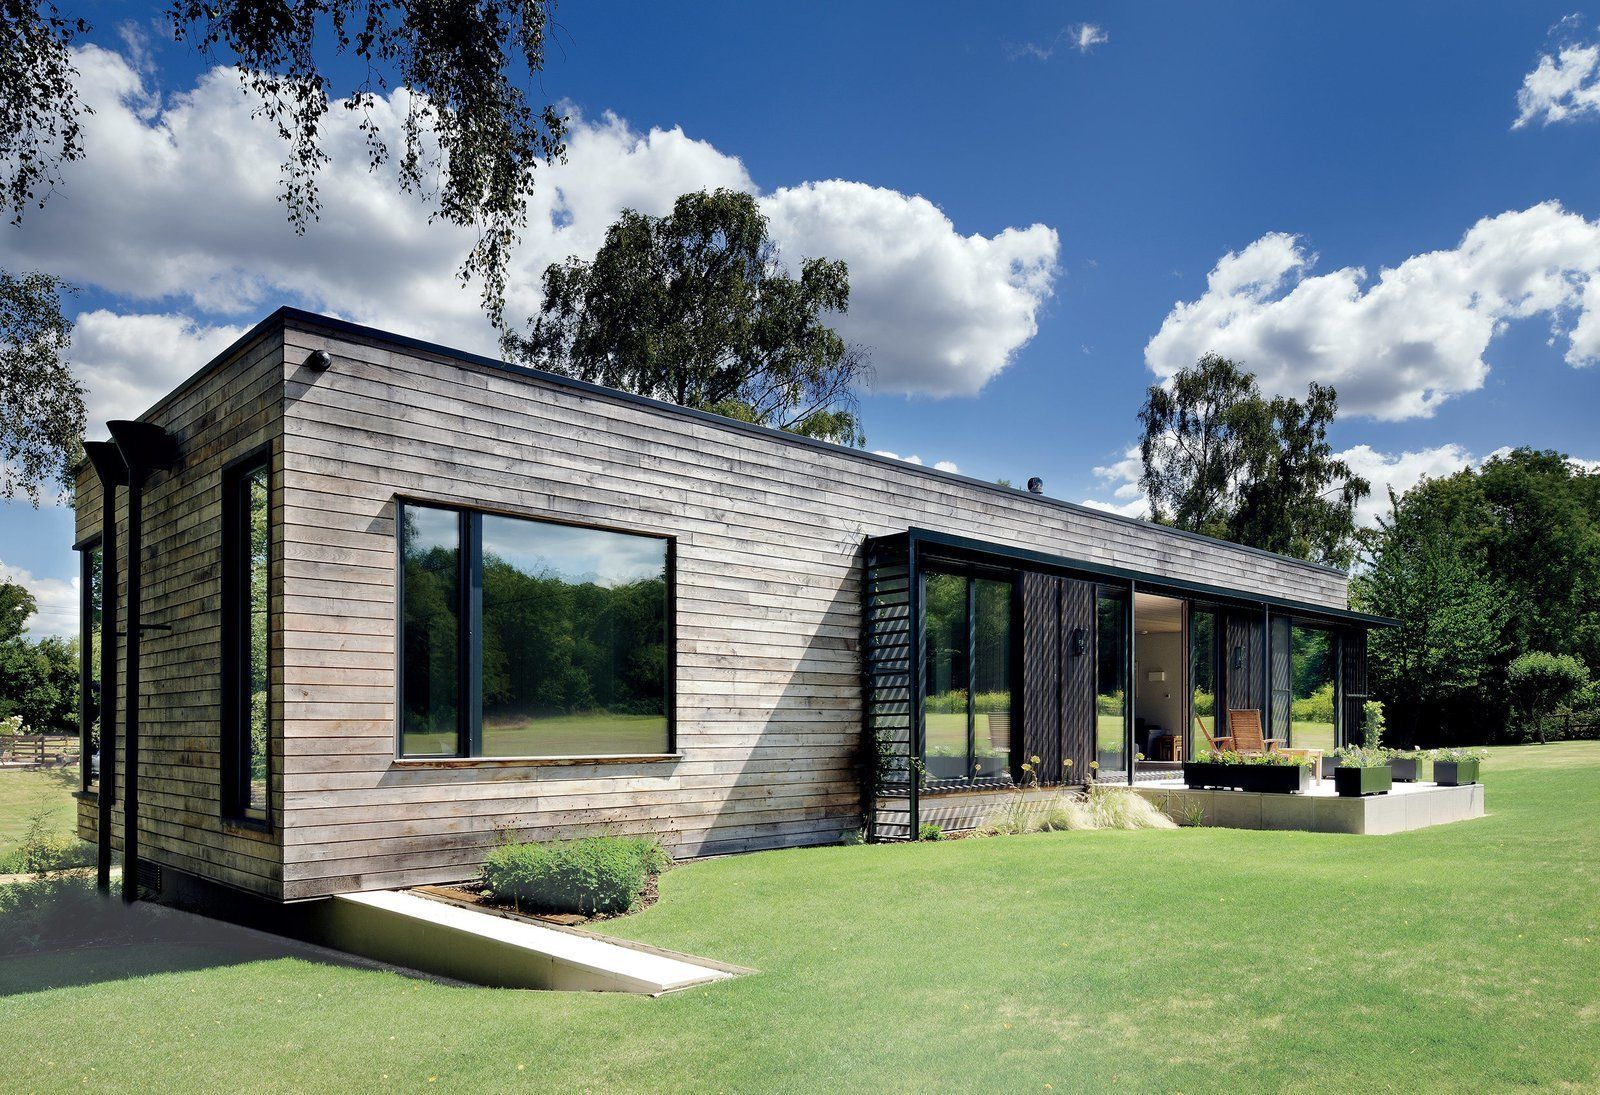 7 Modern Modular And Prefabricated Homes In The Uk Modern Prefab Homes Luxury Mobile Homes Building A Container Home